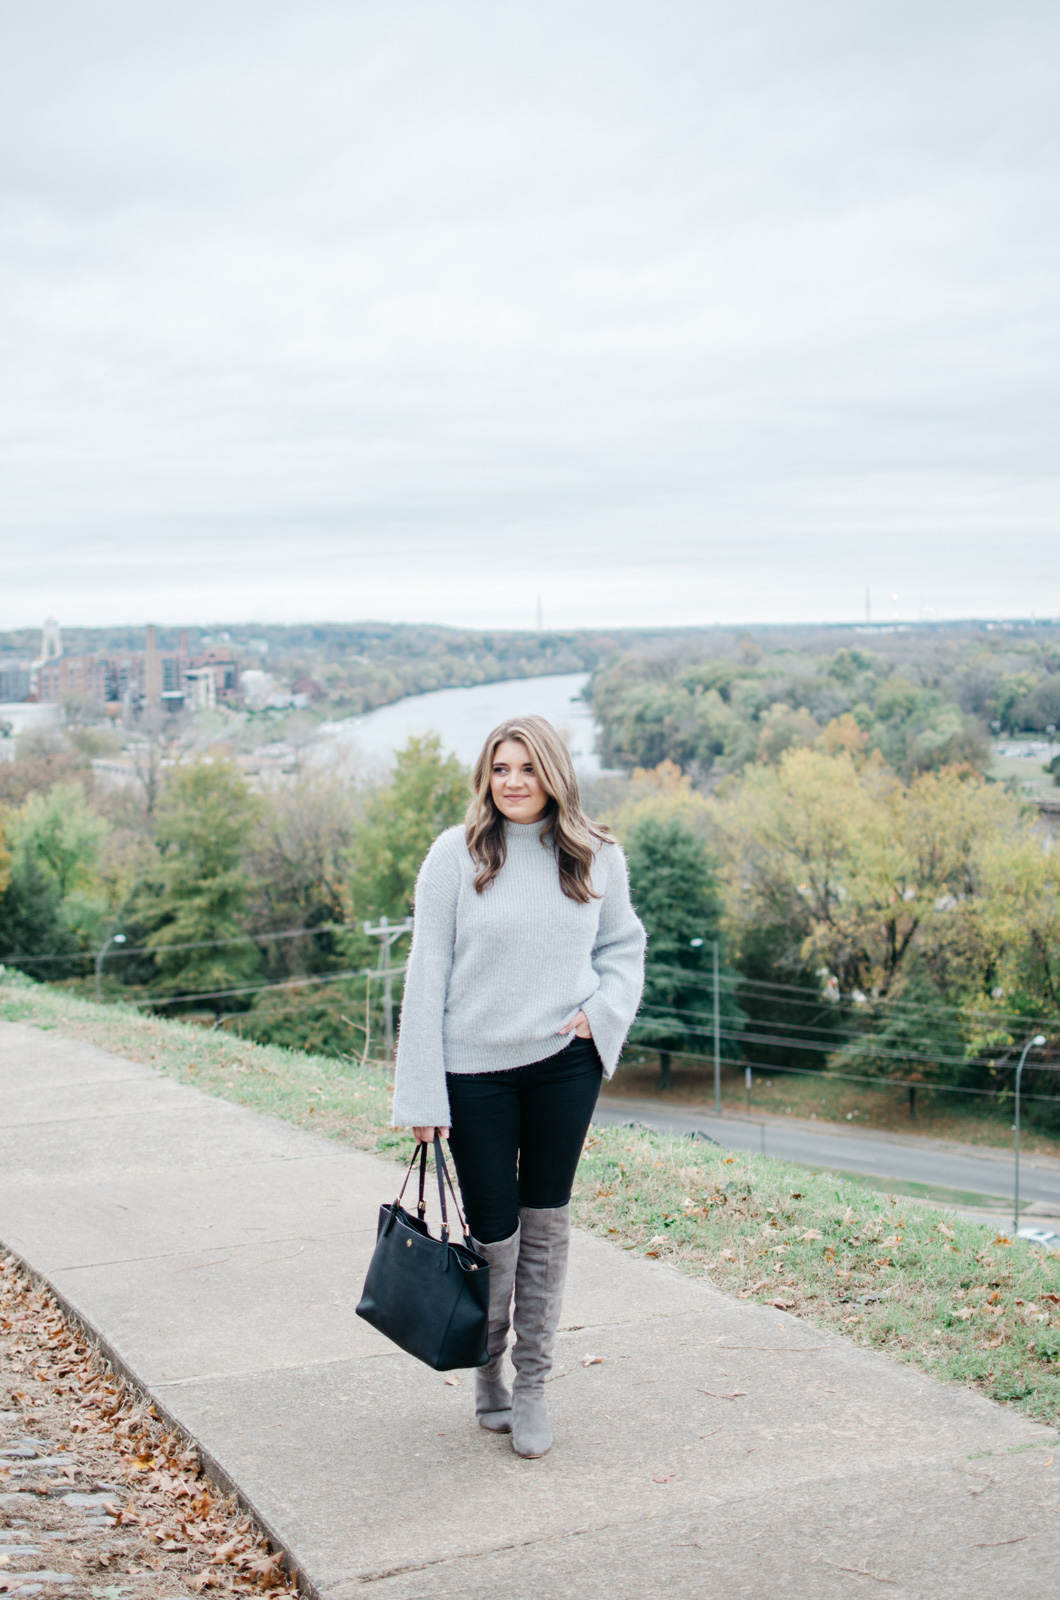 gray and black winter outfit - gray bell sleeve sweater outfit | Get more Winter outfit ideas at bylaurenm.com!